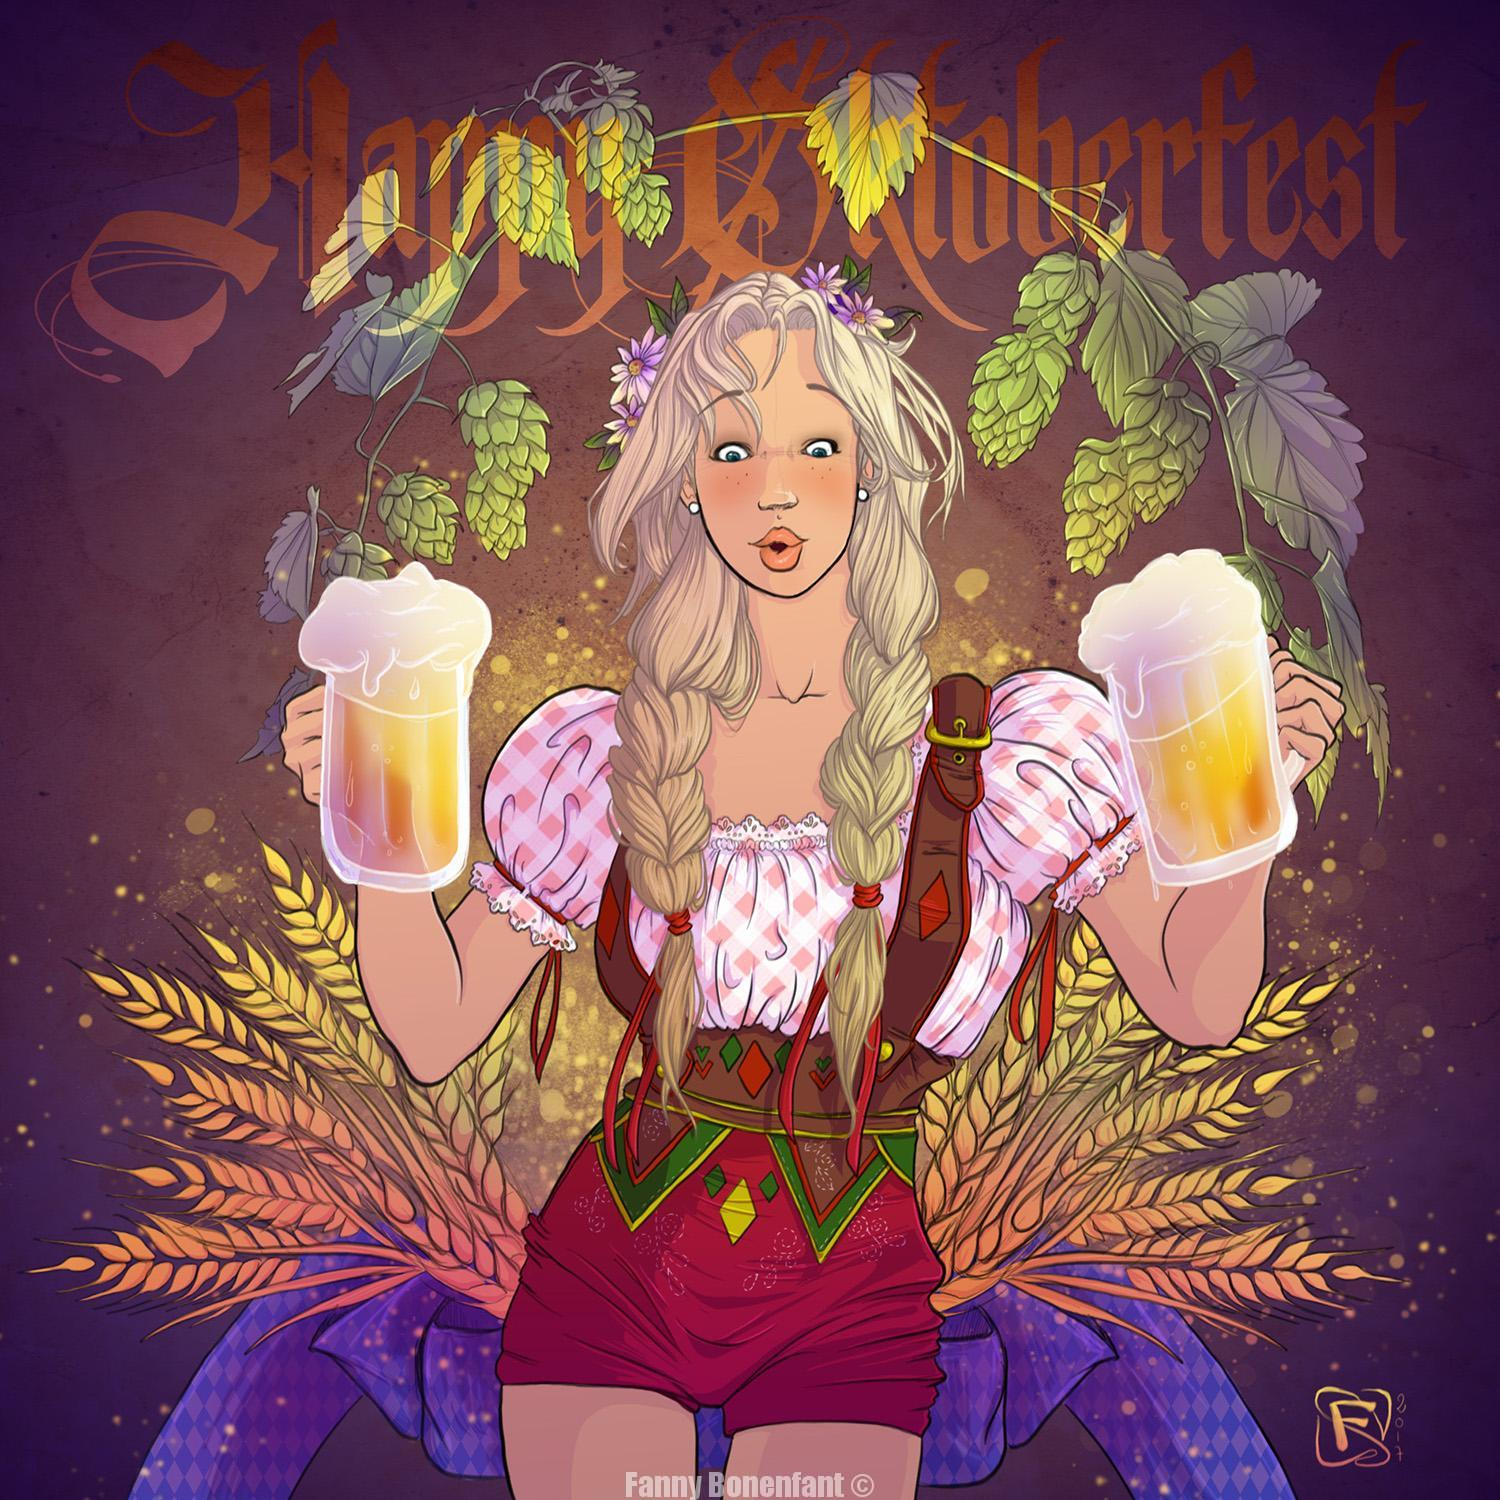 happy Oktoberfest 2017 by Fanny bonenfant illustrations